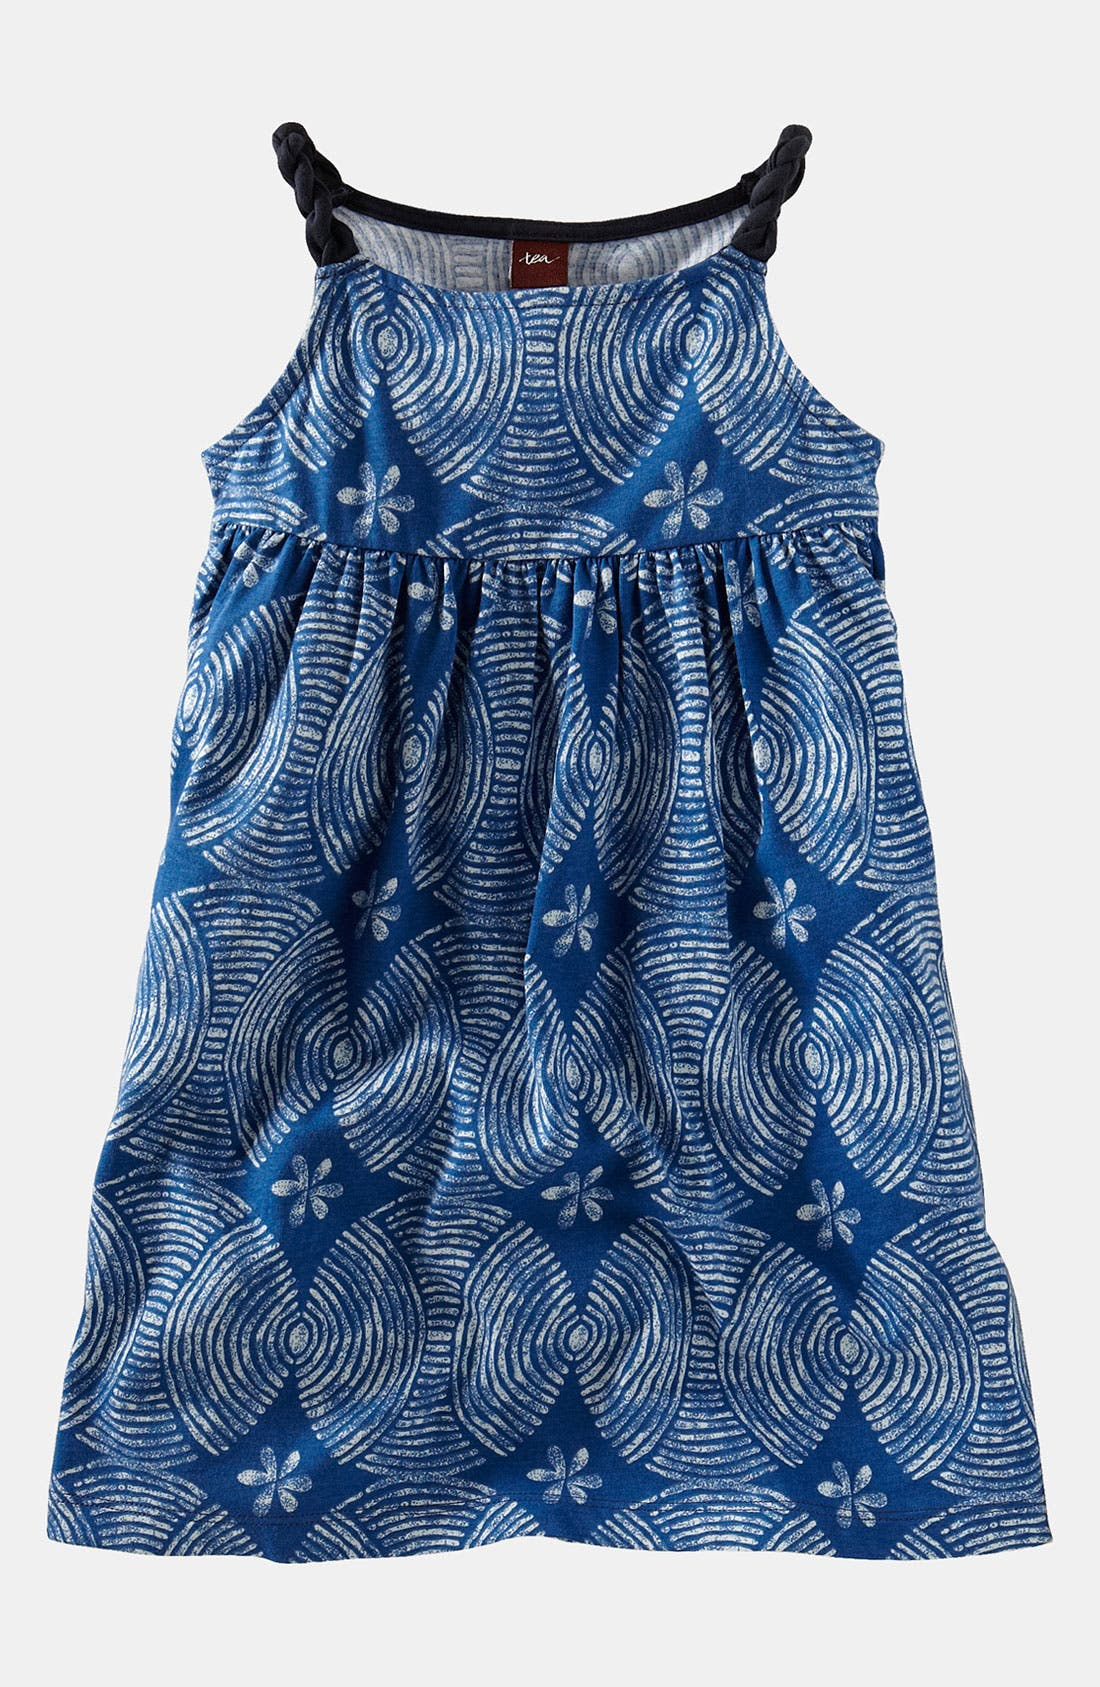 Main Image - Tea Collection 'Sand Circle' Dress (Toddler, Little Girls & Big Girls)